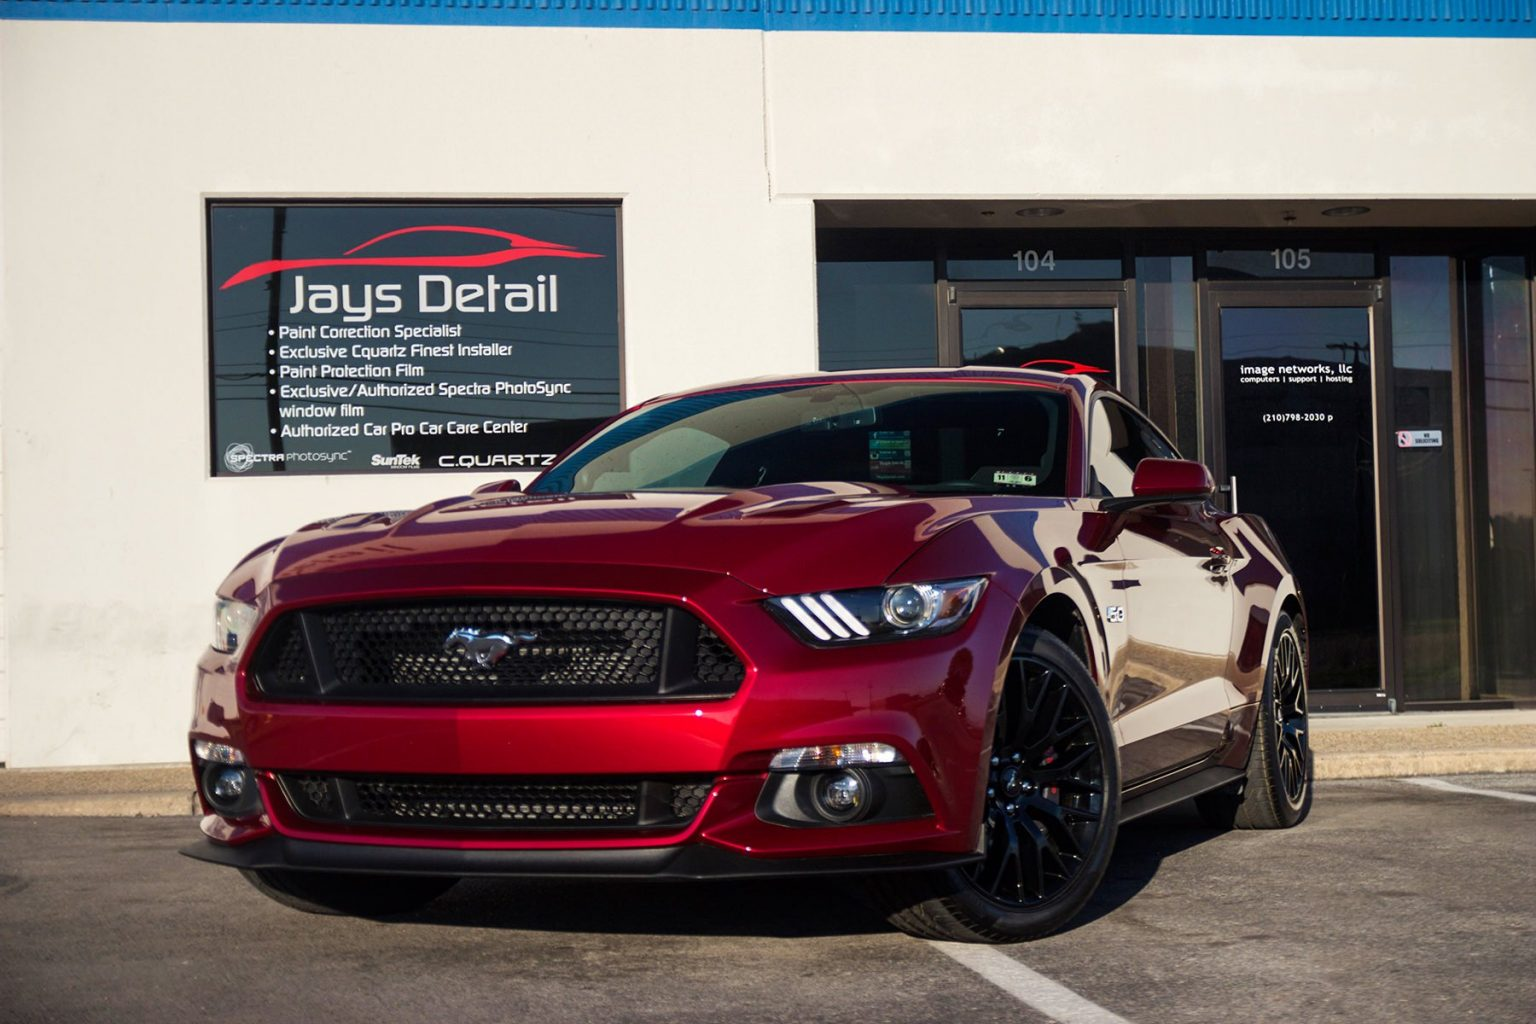 Ford Mustang Paint Correction - Jay's Detail